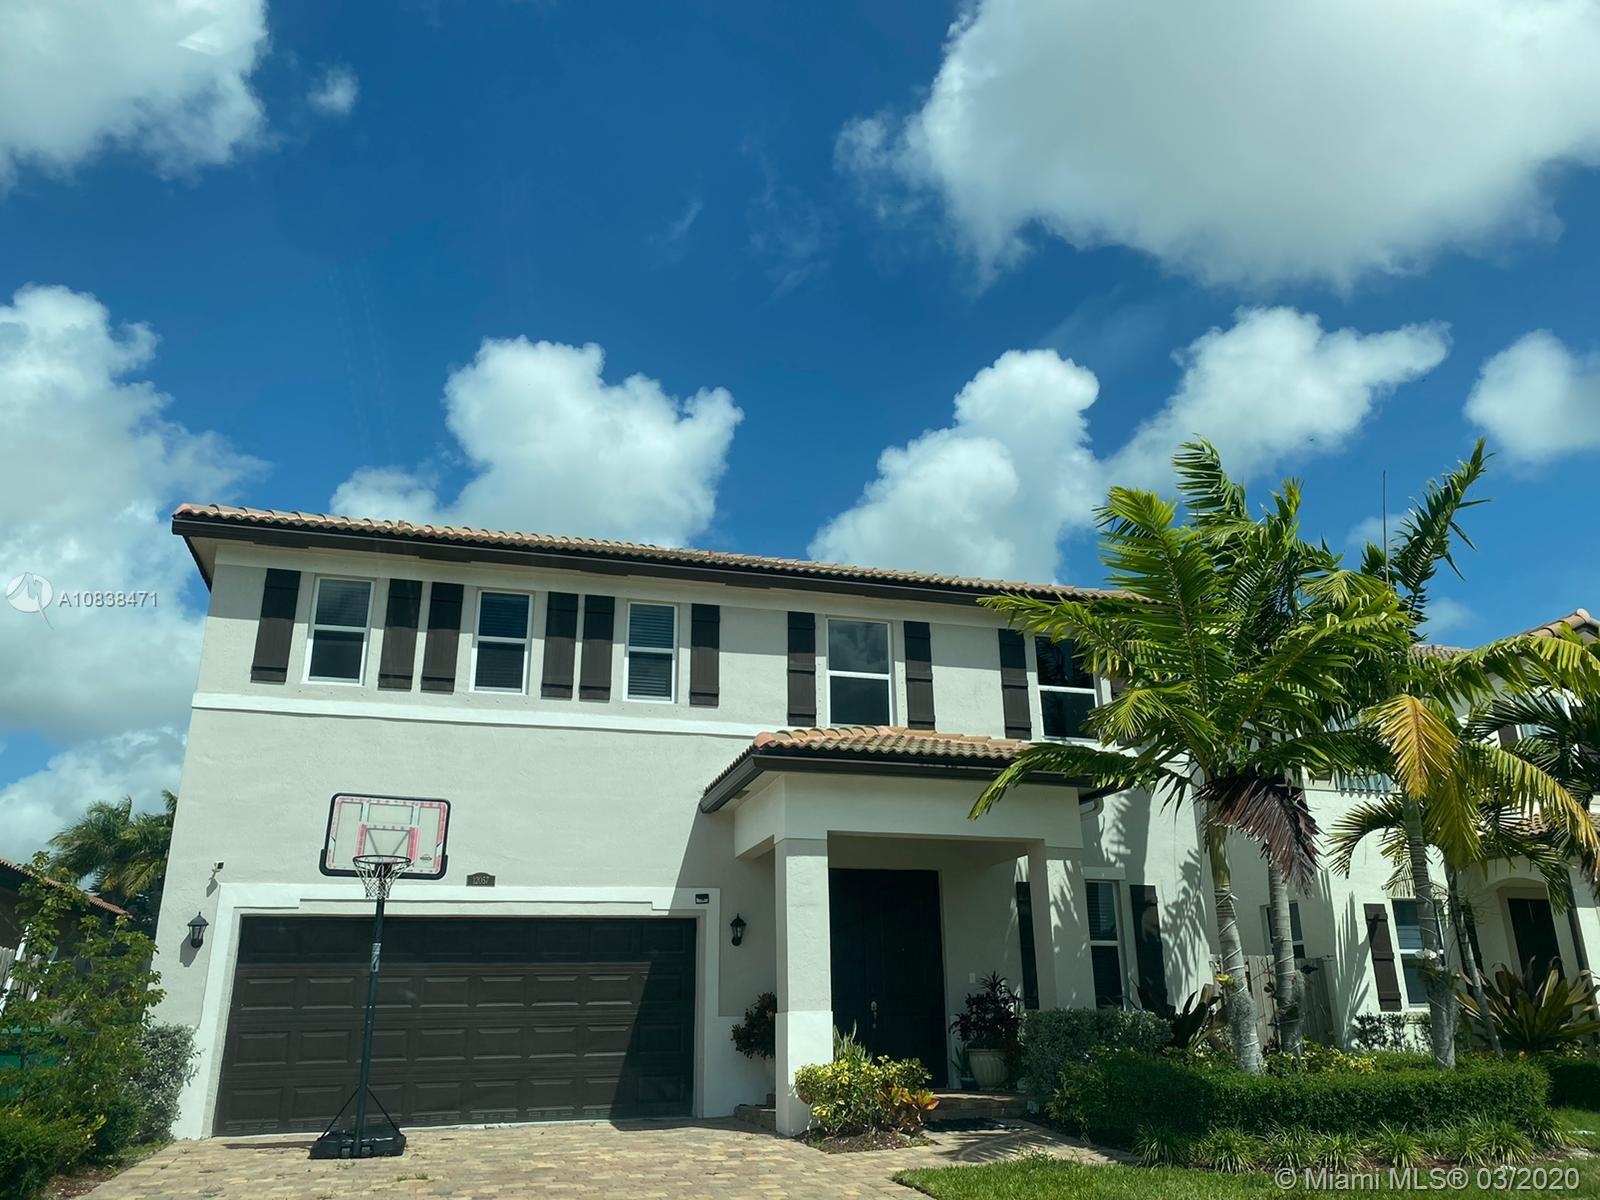 12057 SW 253rd St, Homestead, FL 33032 - Homestead, FL real estate listing